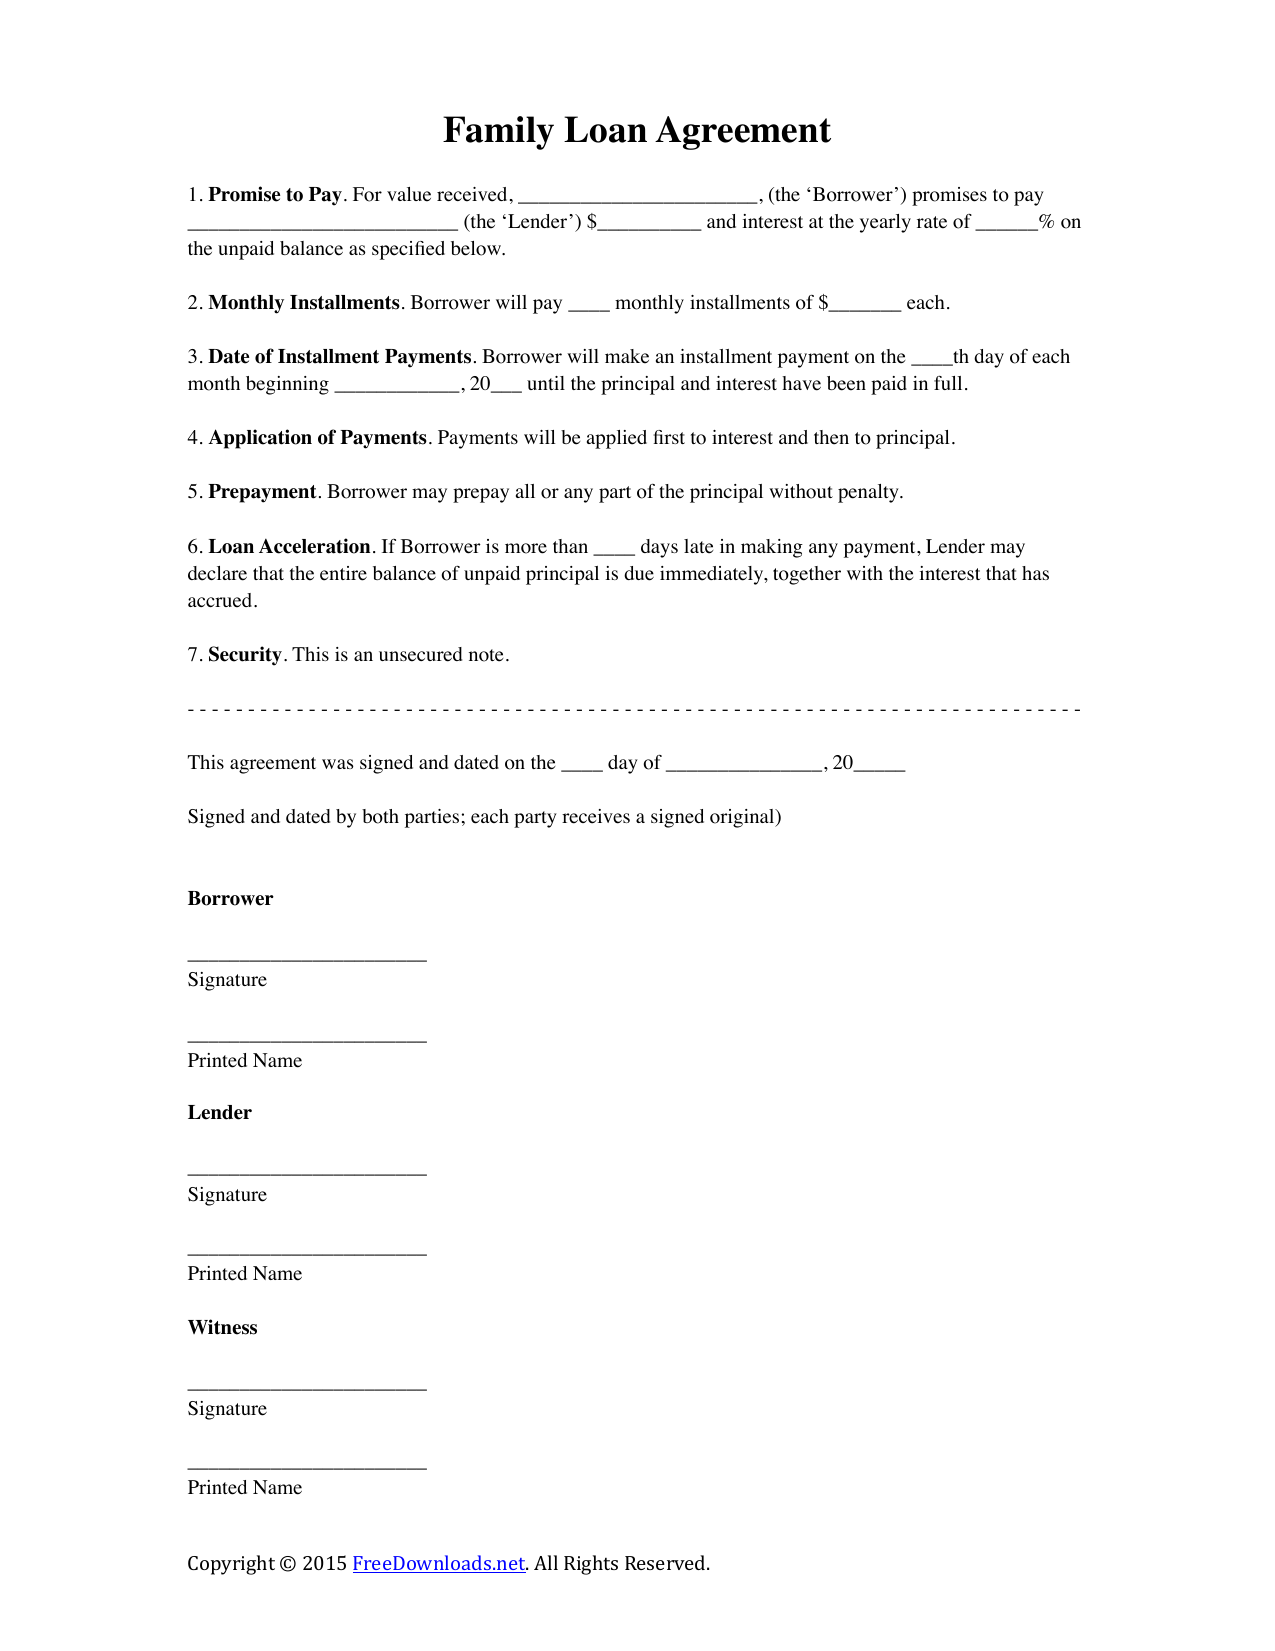 Download Family Loan Agreement Template | PDF | RTF | Word